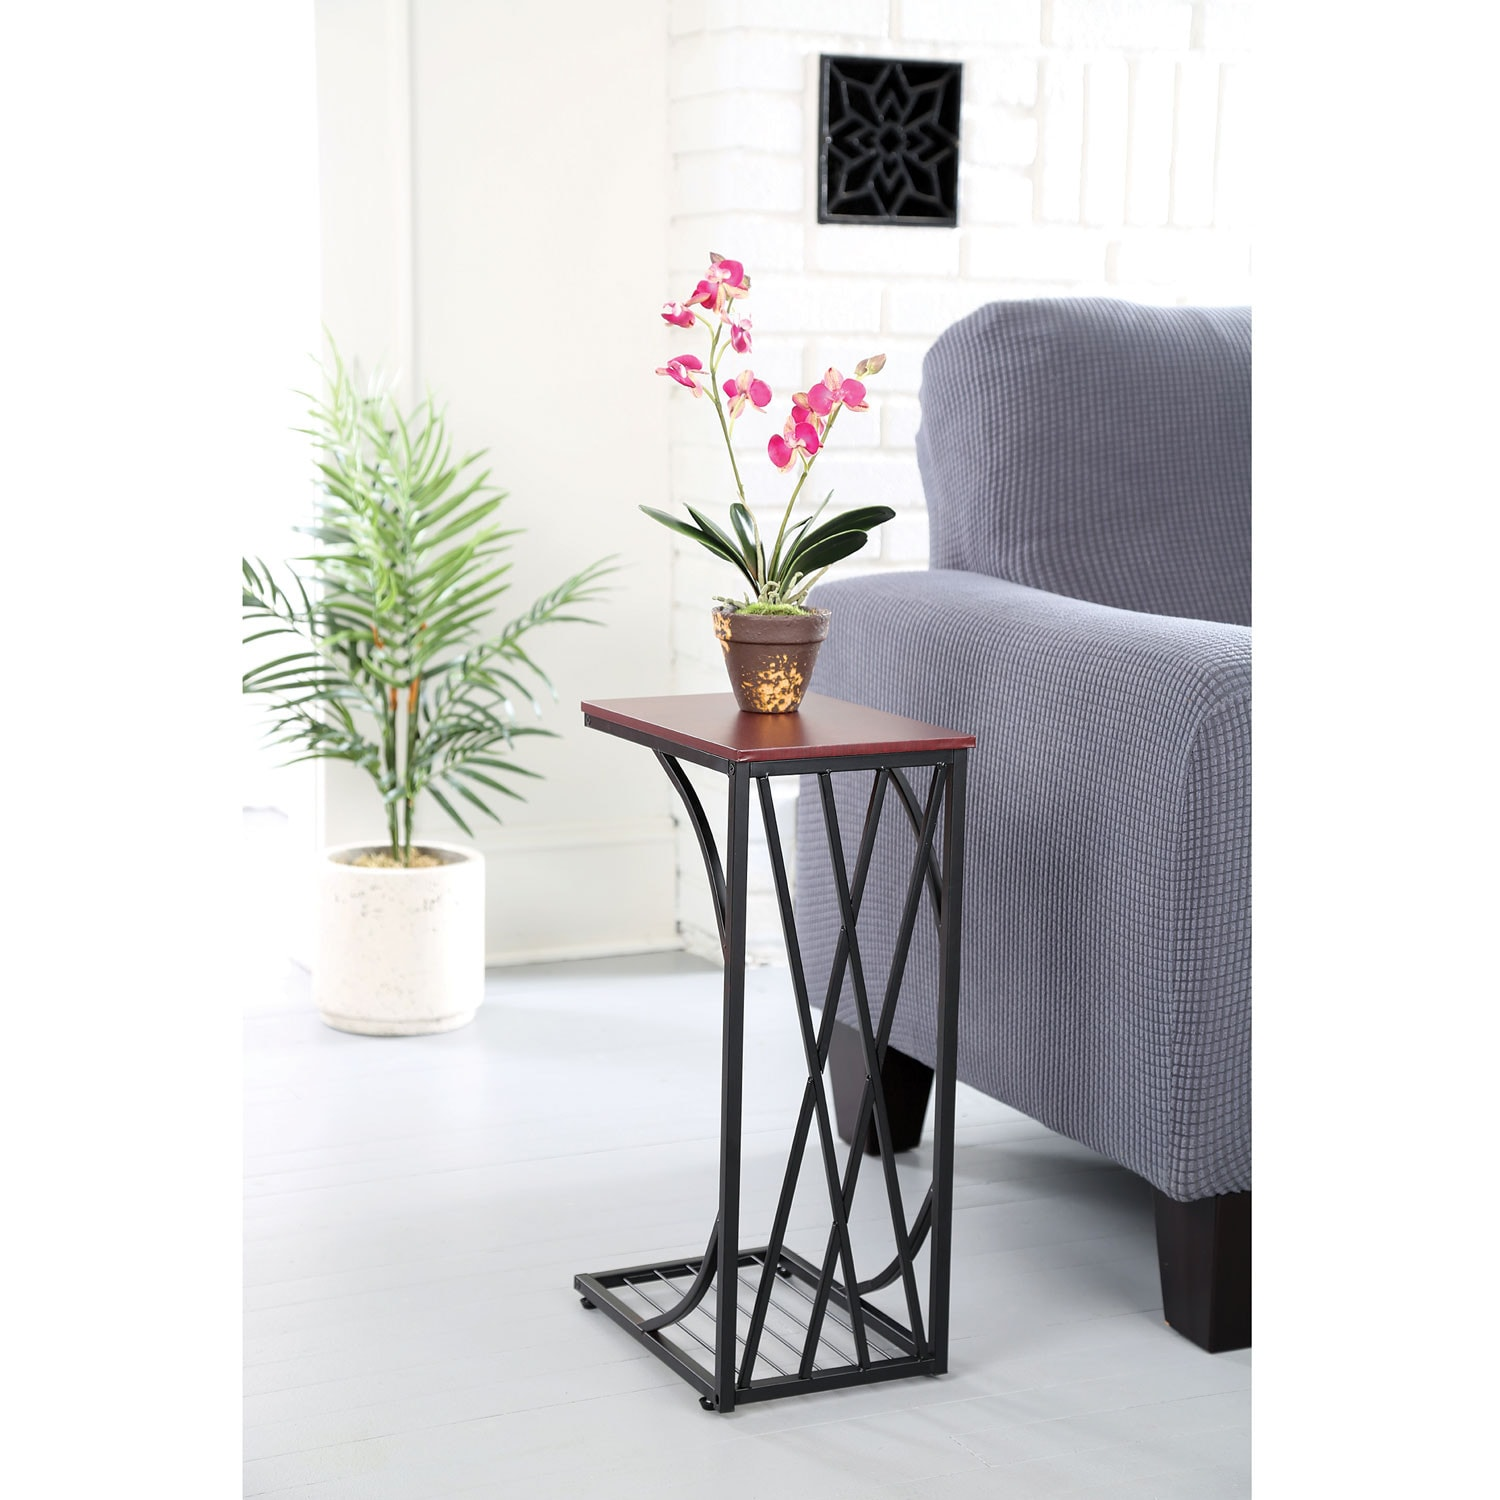 C Shaped Side Sofa End Table Snack Tv